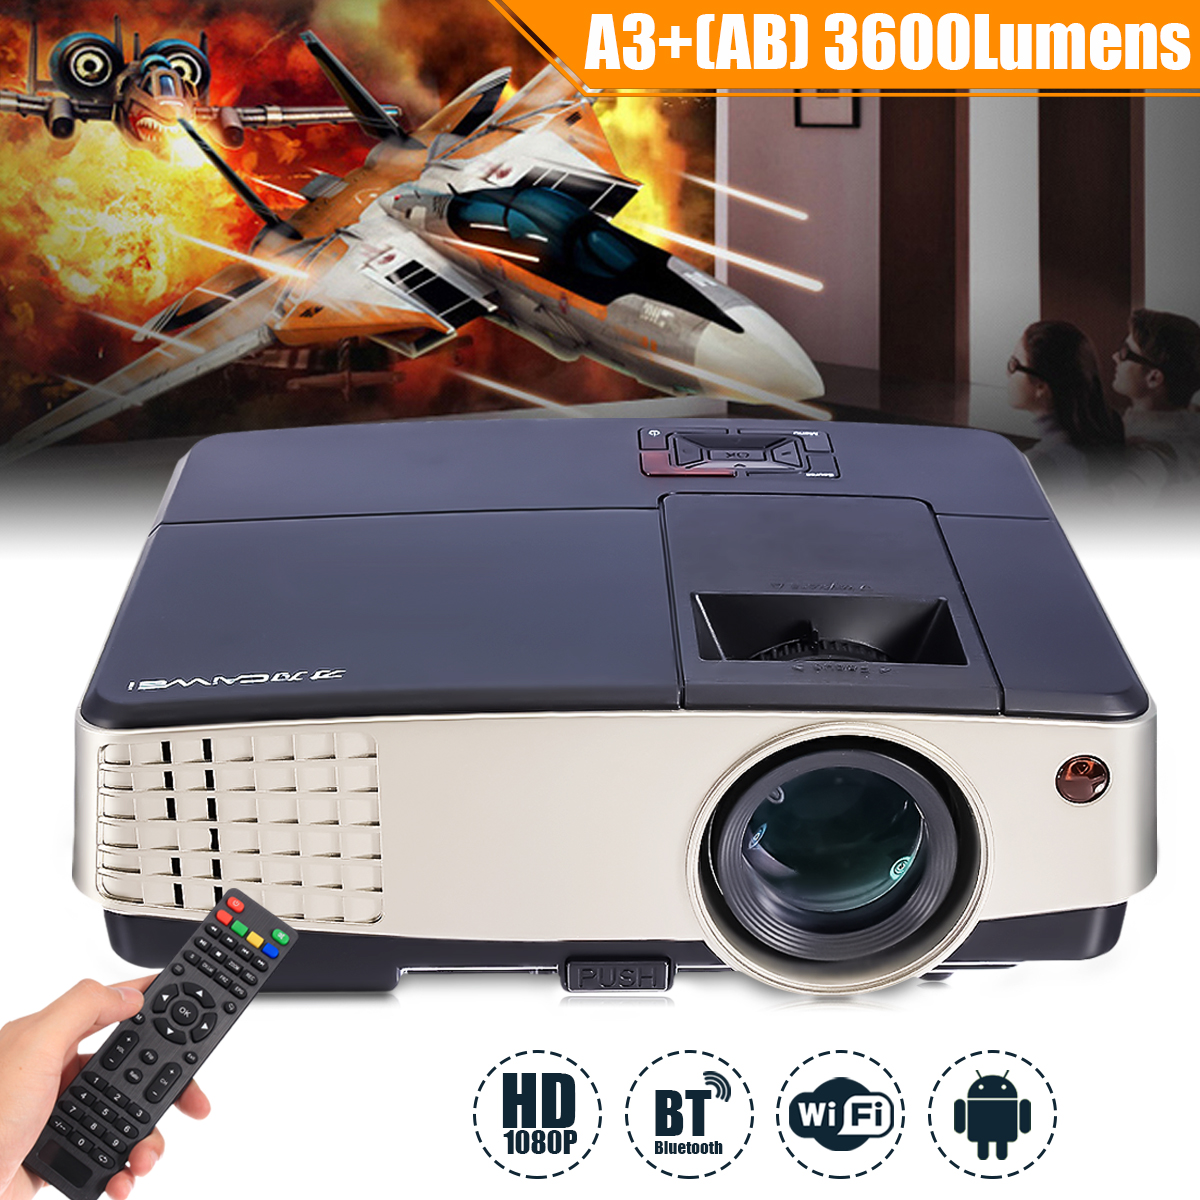 3600 Lumens A3+AB Projector 1080P Full HD LCD Wifi Home Theater Cinema 72W LED Android 4.4 Bluetooth Multimedia Beamer hd a3